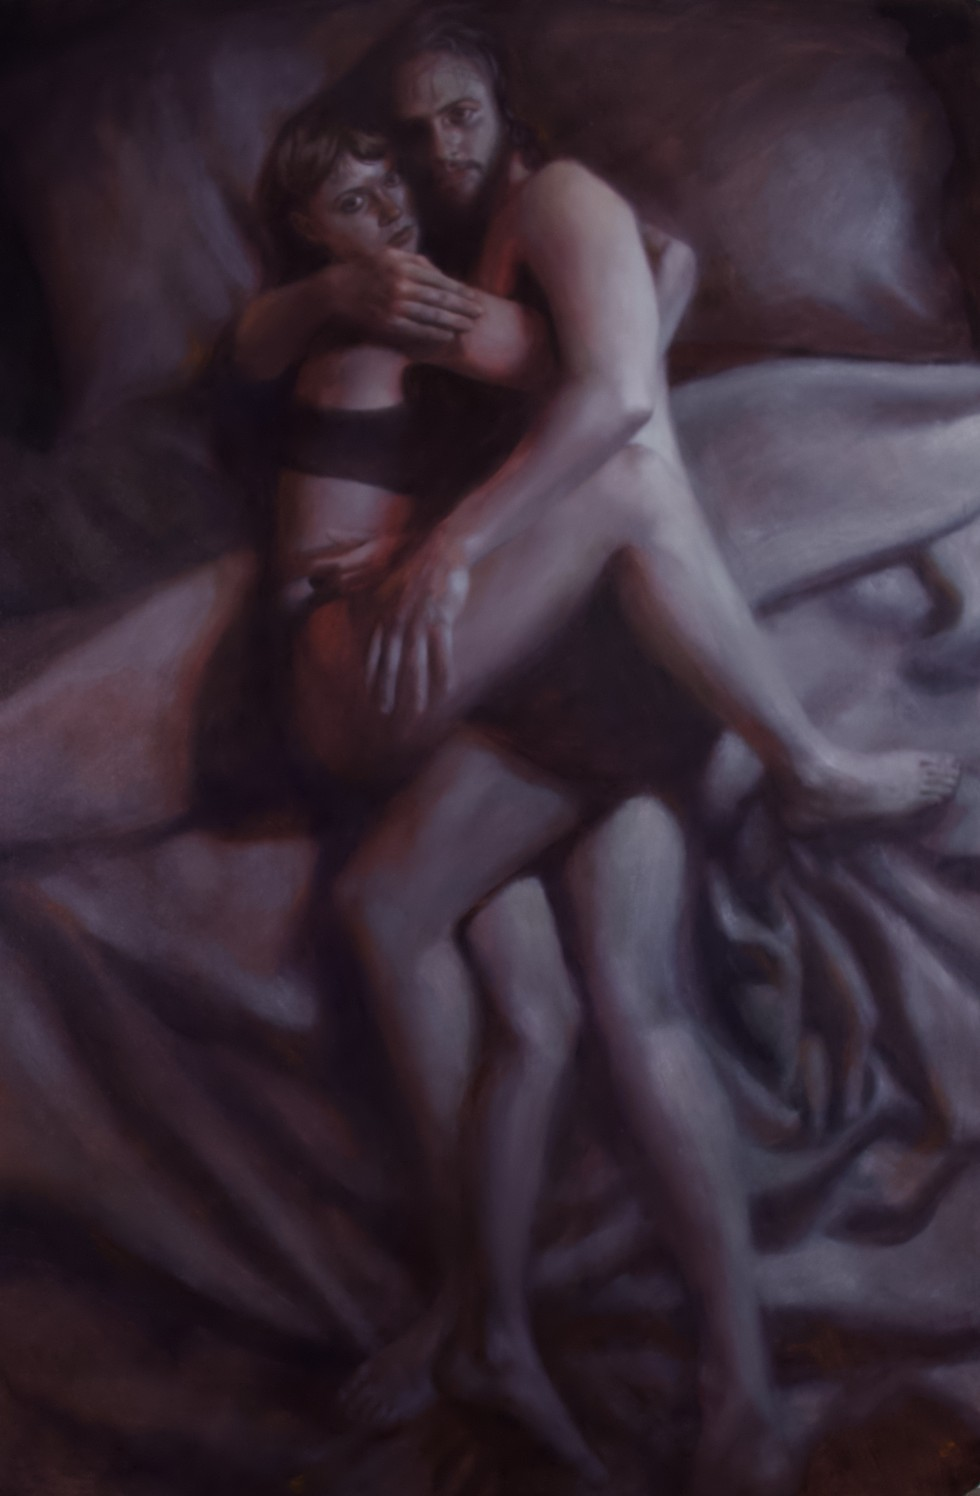 From a bird's eye view, there are two figures laying in bed in a warm embrace looking directly at the viewer with expressionless faces. One right side of the painting is mostly a cool blue and the left side is a warm purple with some reds.